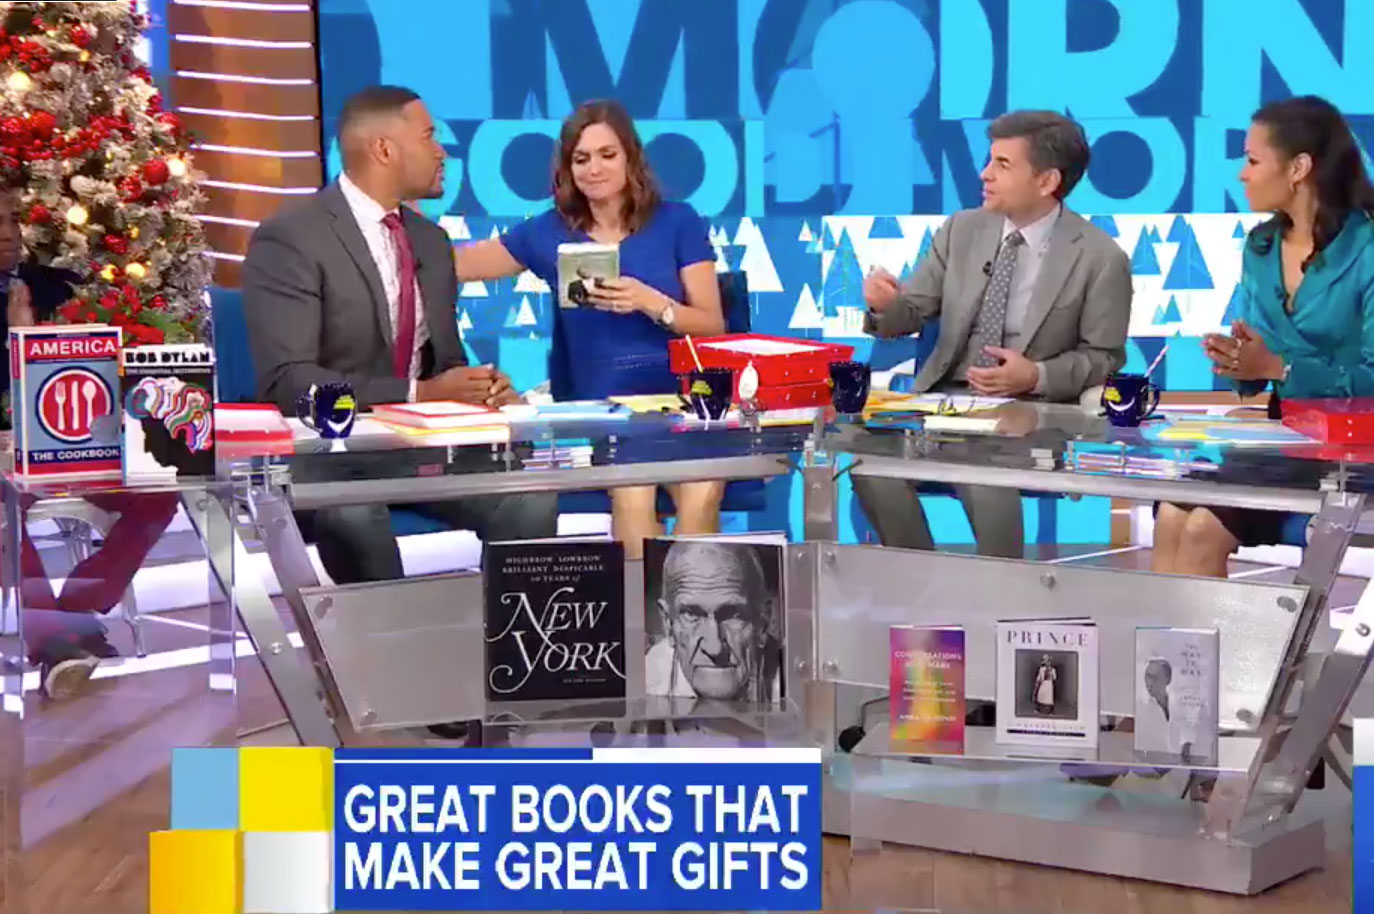 America the Cookbook featured in Good Morning America's Great Books that Make Great Gifts section for Christmas 2017